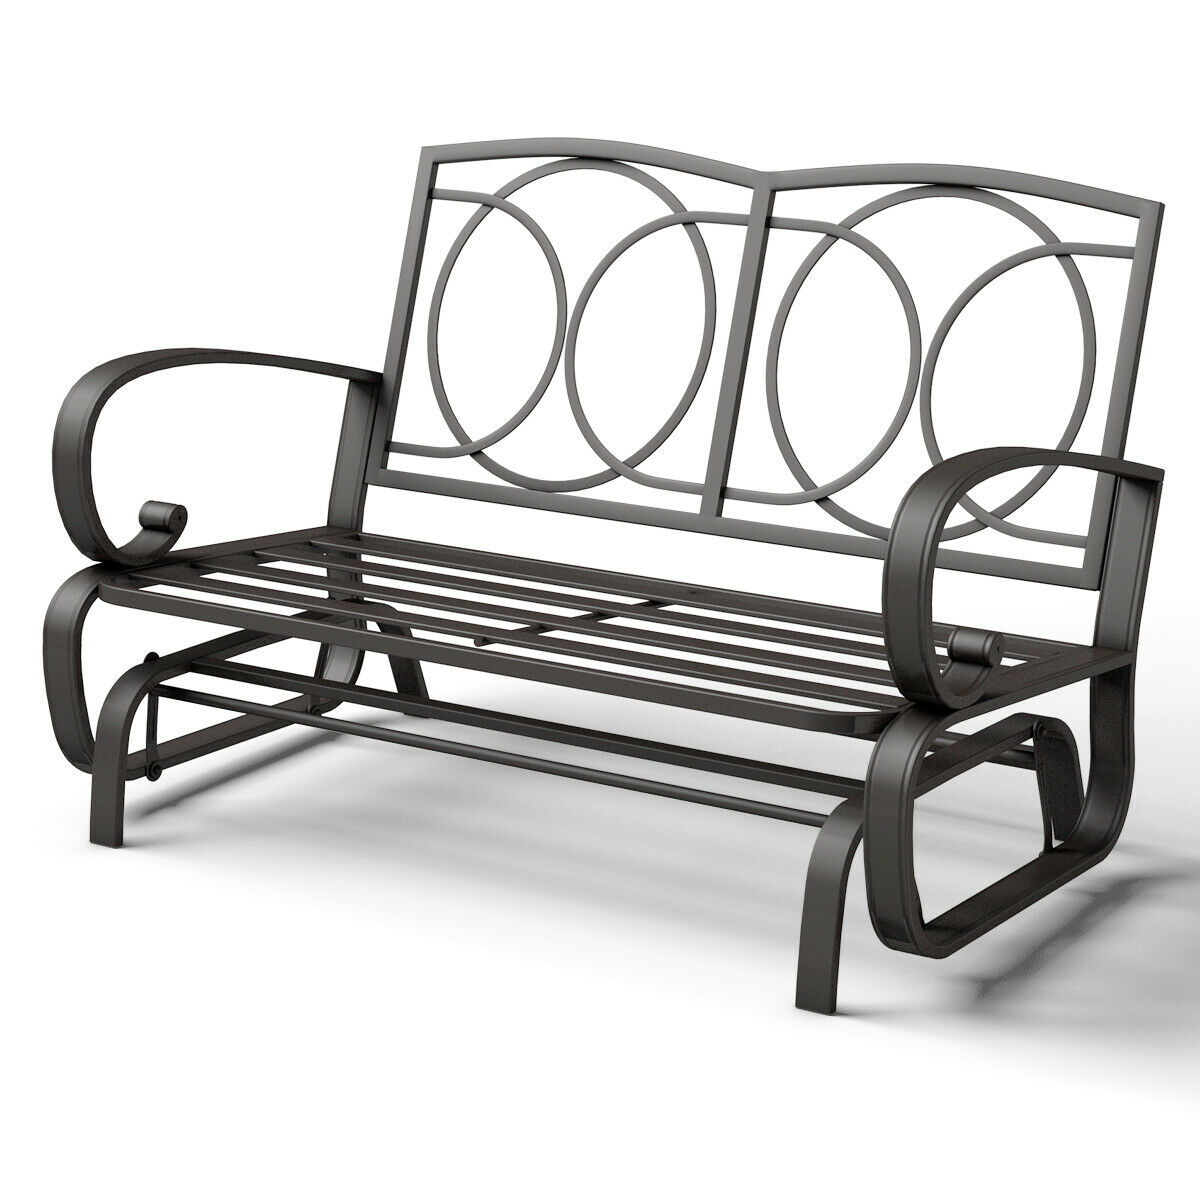 Costway Glider Outdoor Patio Rocking Bench Loveseat For Black Steel Patio Swing Glider Benches Powder Coated (Image 6 of 25)